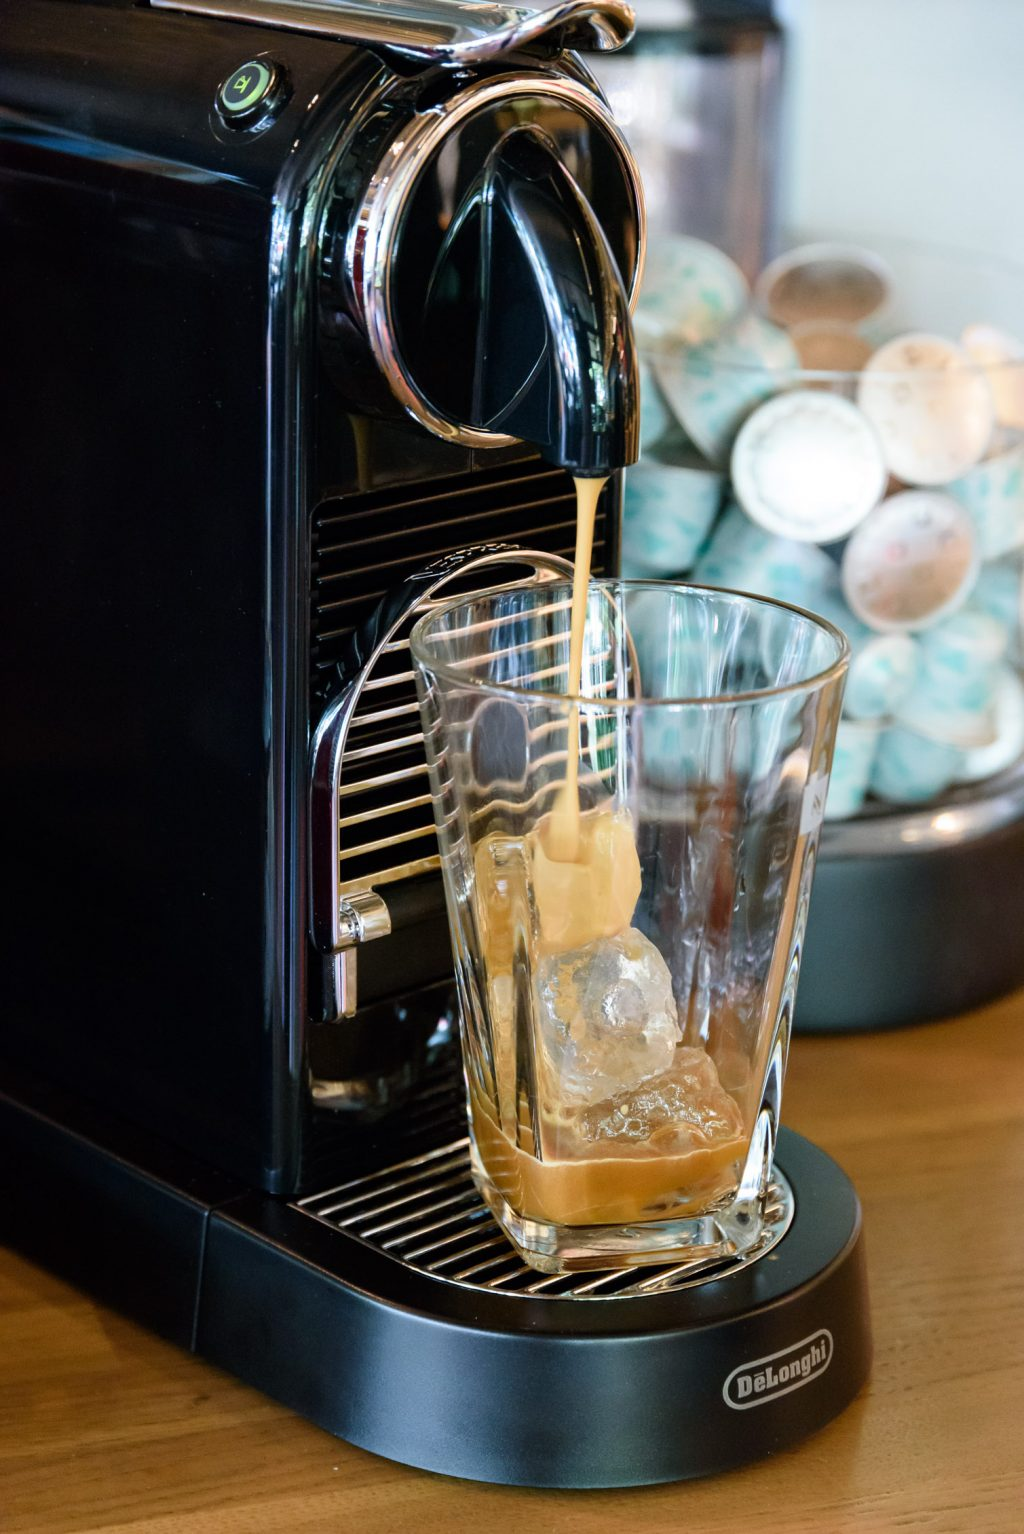 Nespresso-On Ice-2017 Nespresso machine Vienna Blog